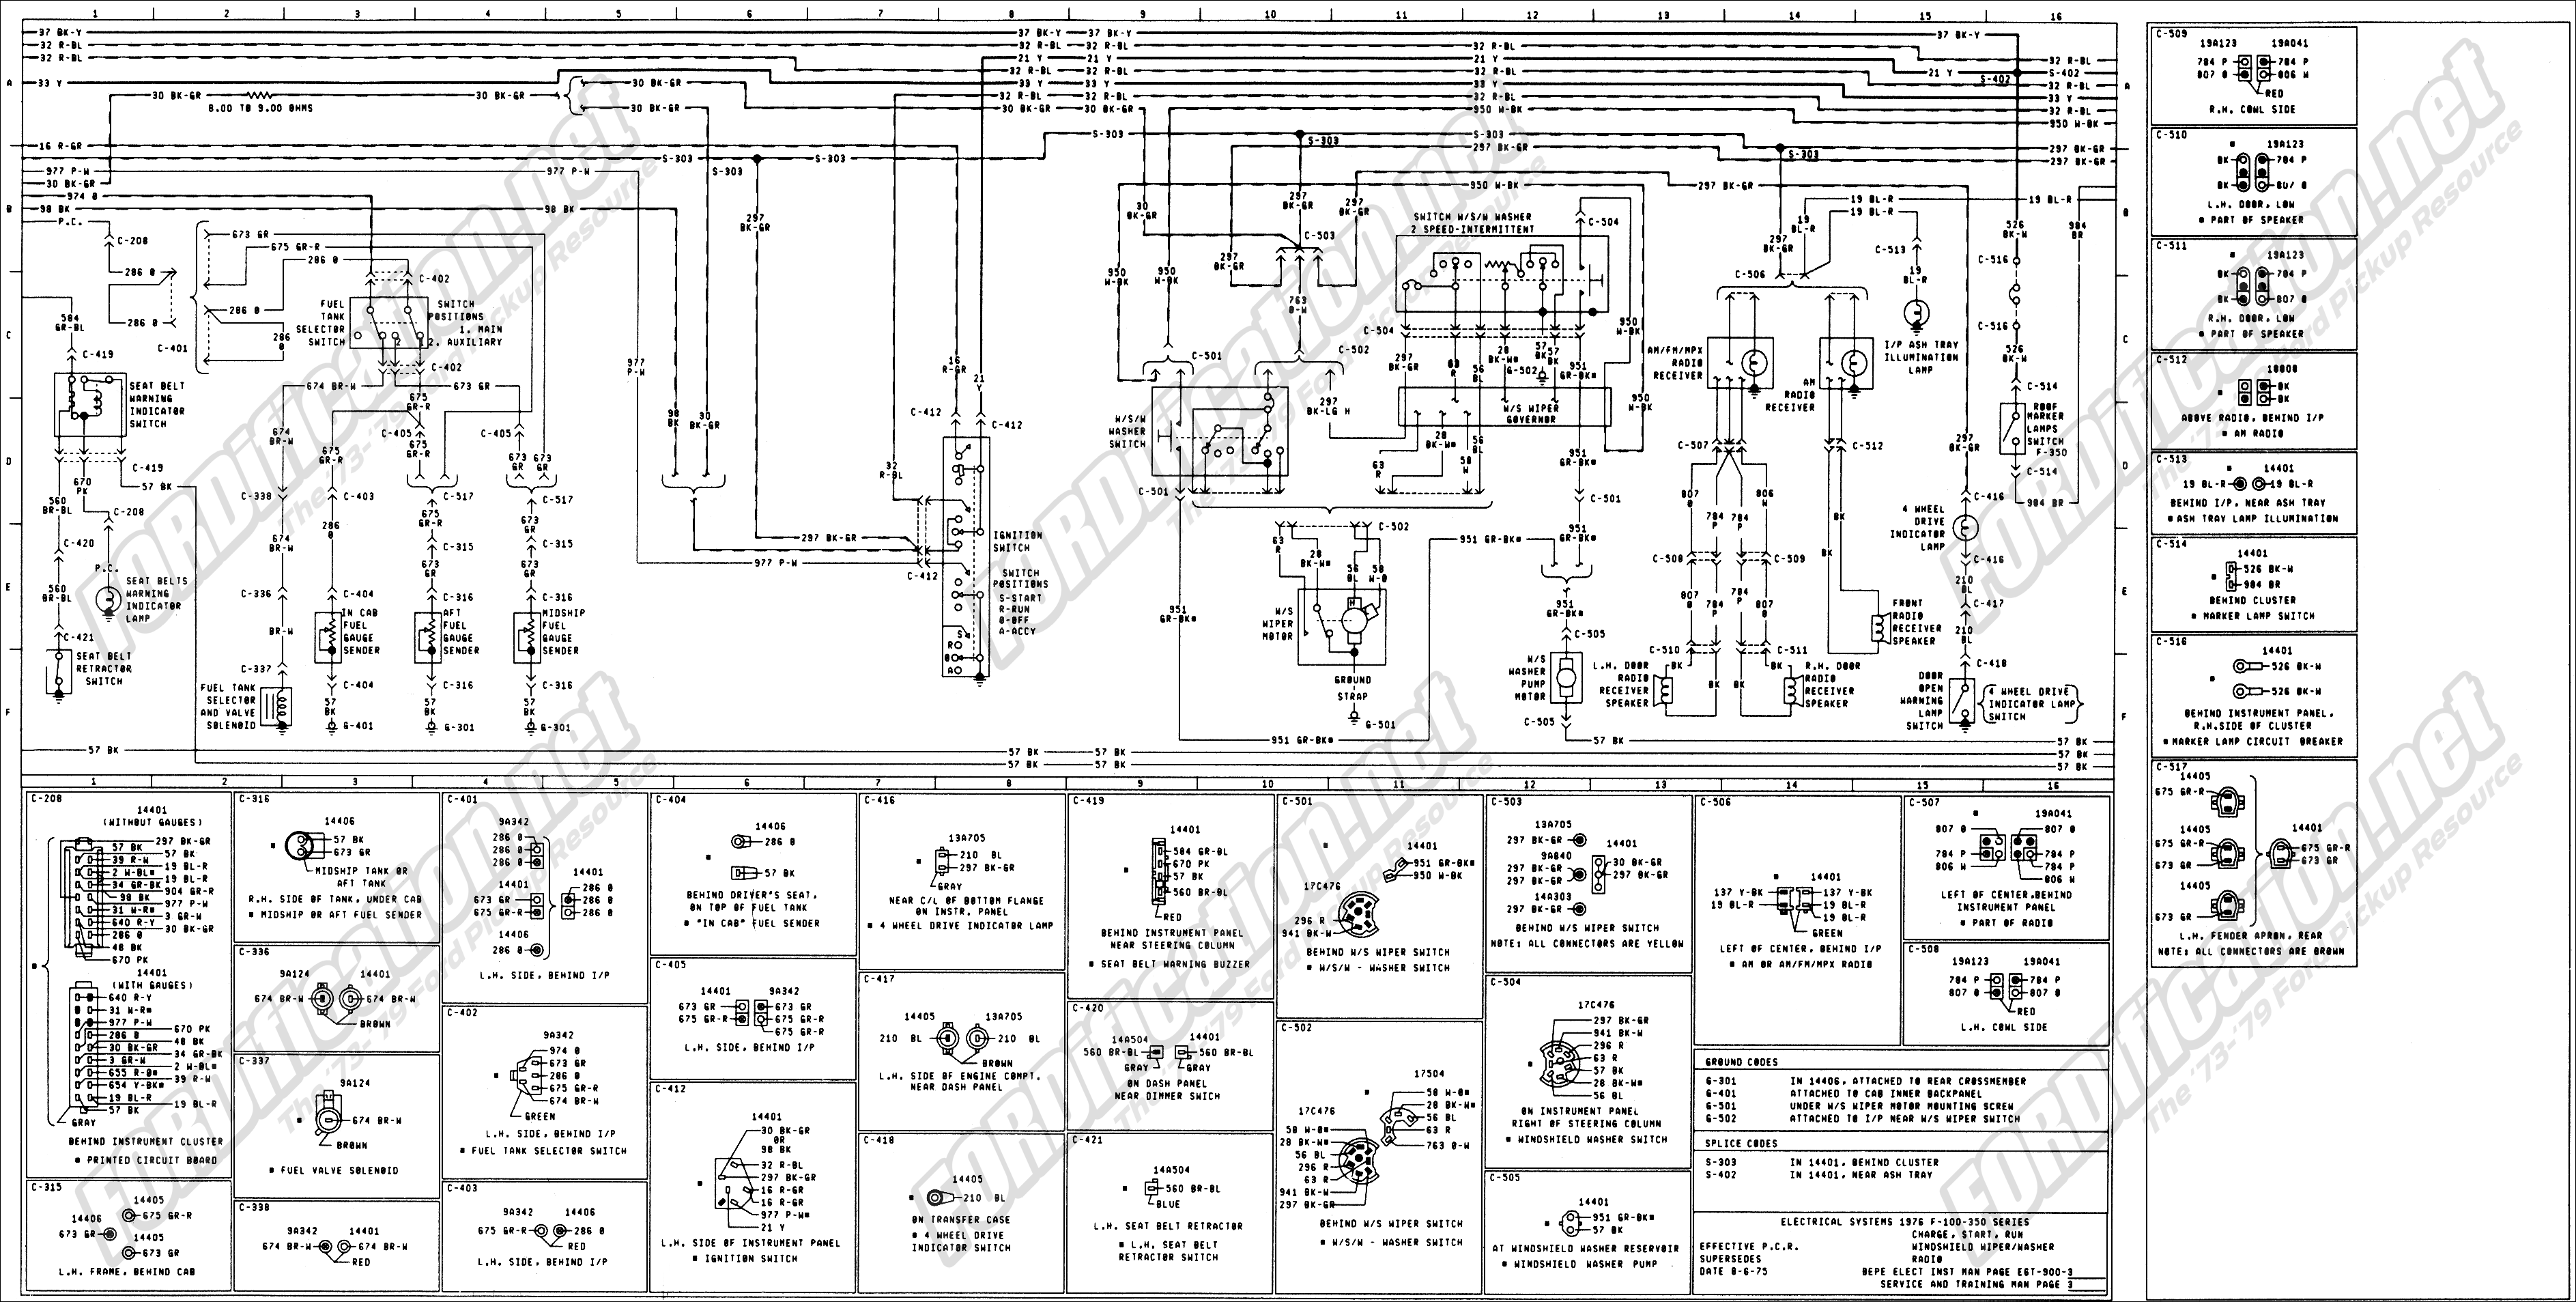 wiring_76master_3of9 1987 ford f 250 wiring diagram wiring diagram simonand wiring diagram mirrors 2009 ford f150 truck at soozxer.org